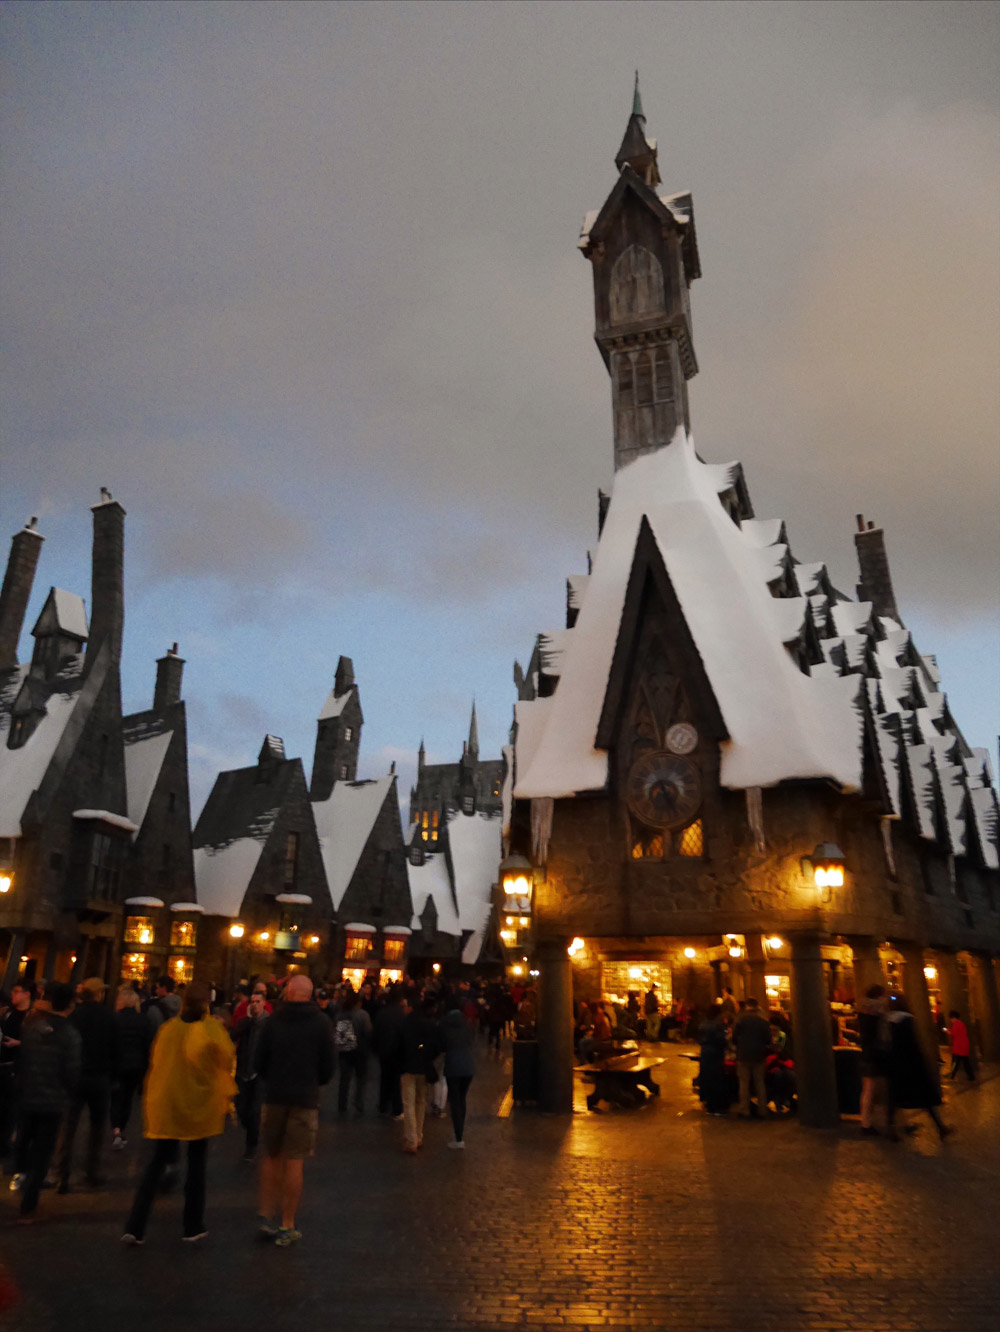 Hogsmeade, The Wizarding World of Harry Potter, Universal Studios Hollywood